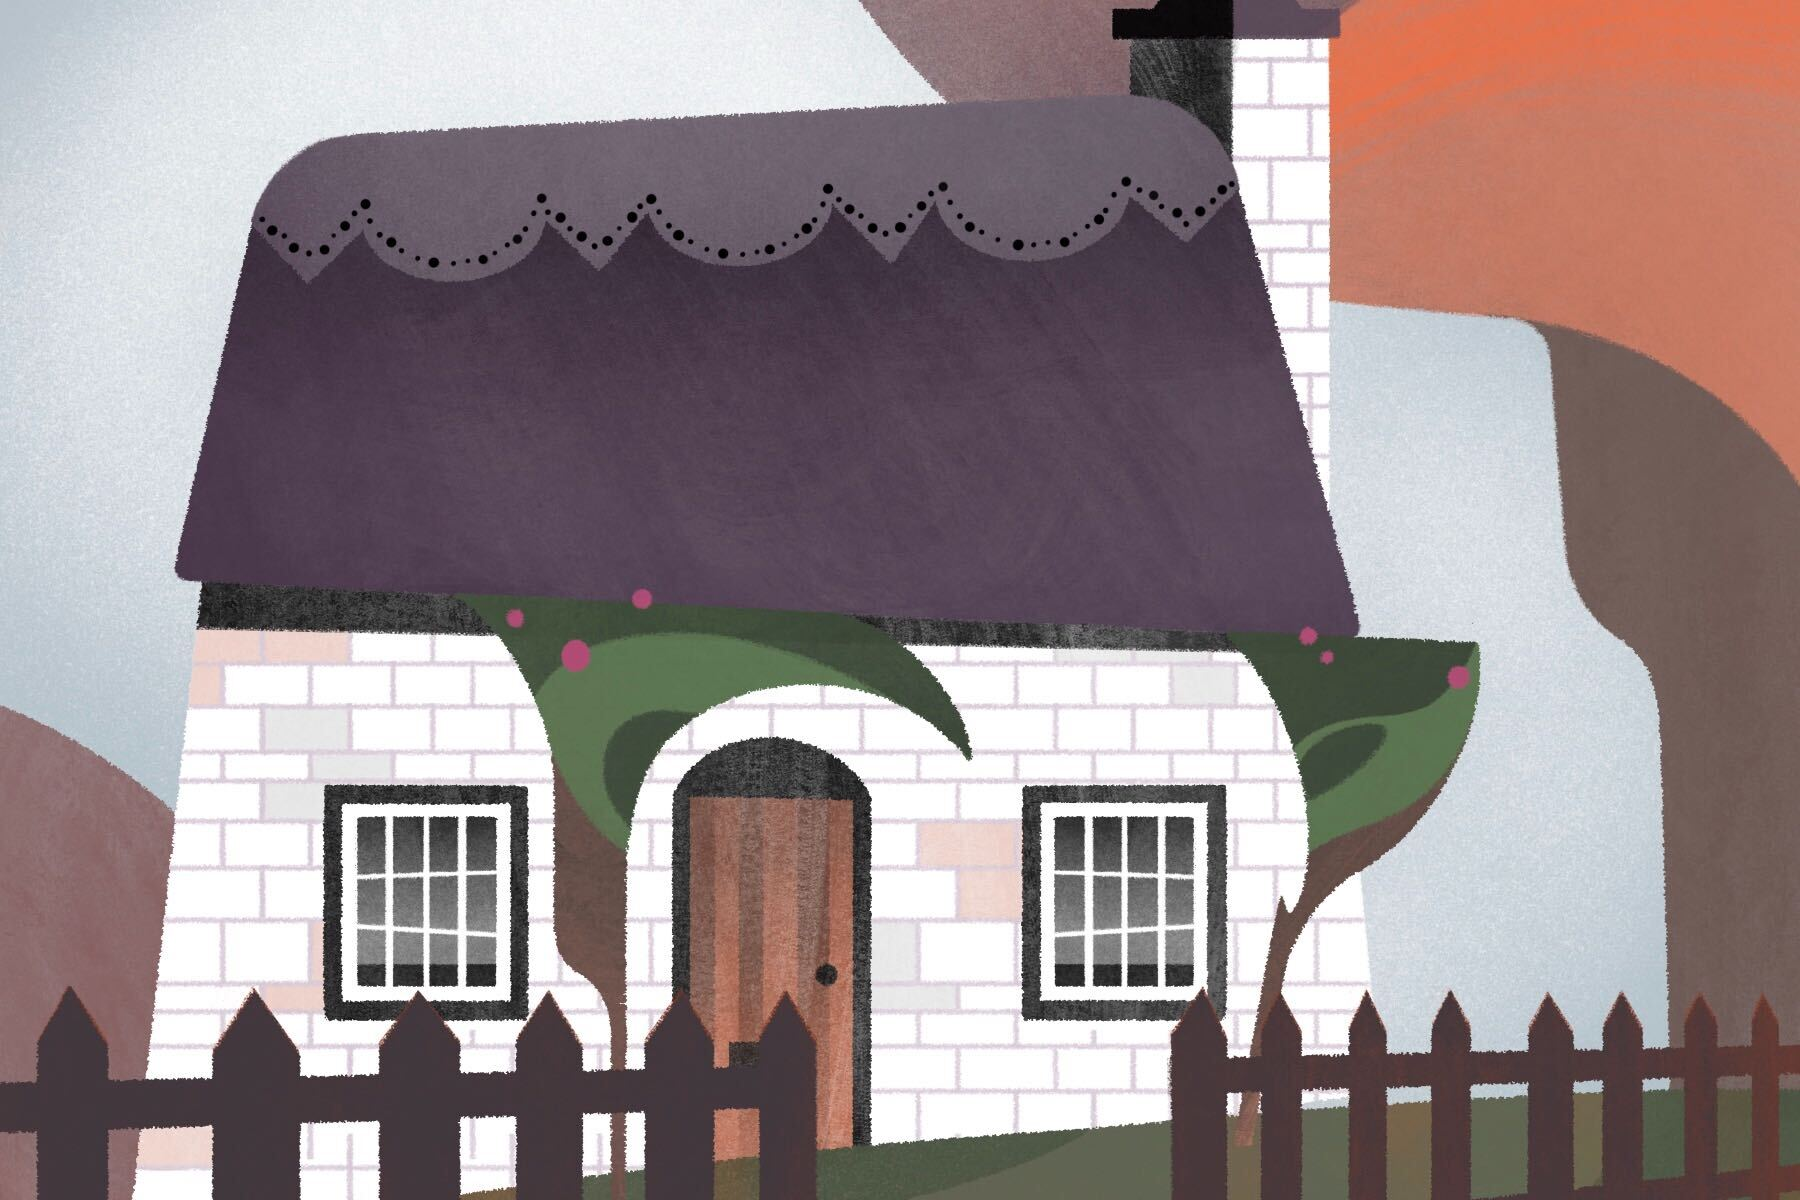 Illustration by Francesca Mahaney of a cottage in an article about cottagecore